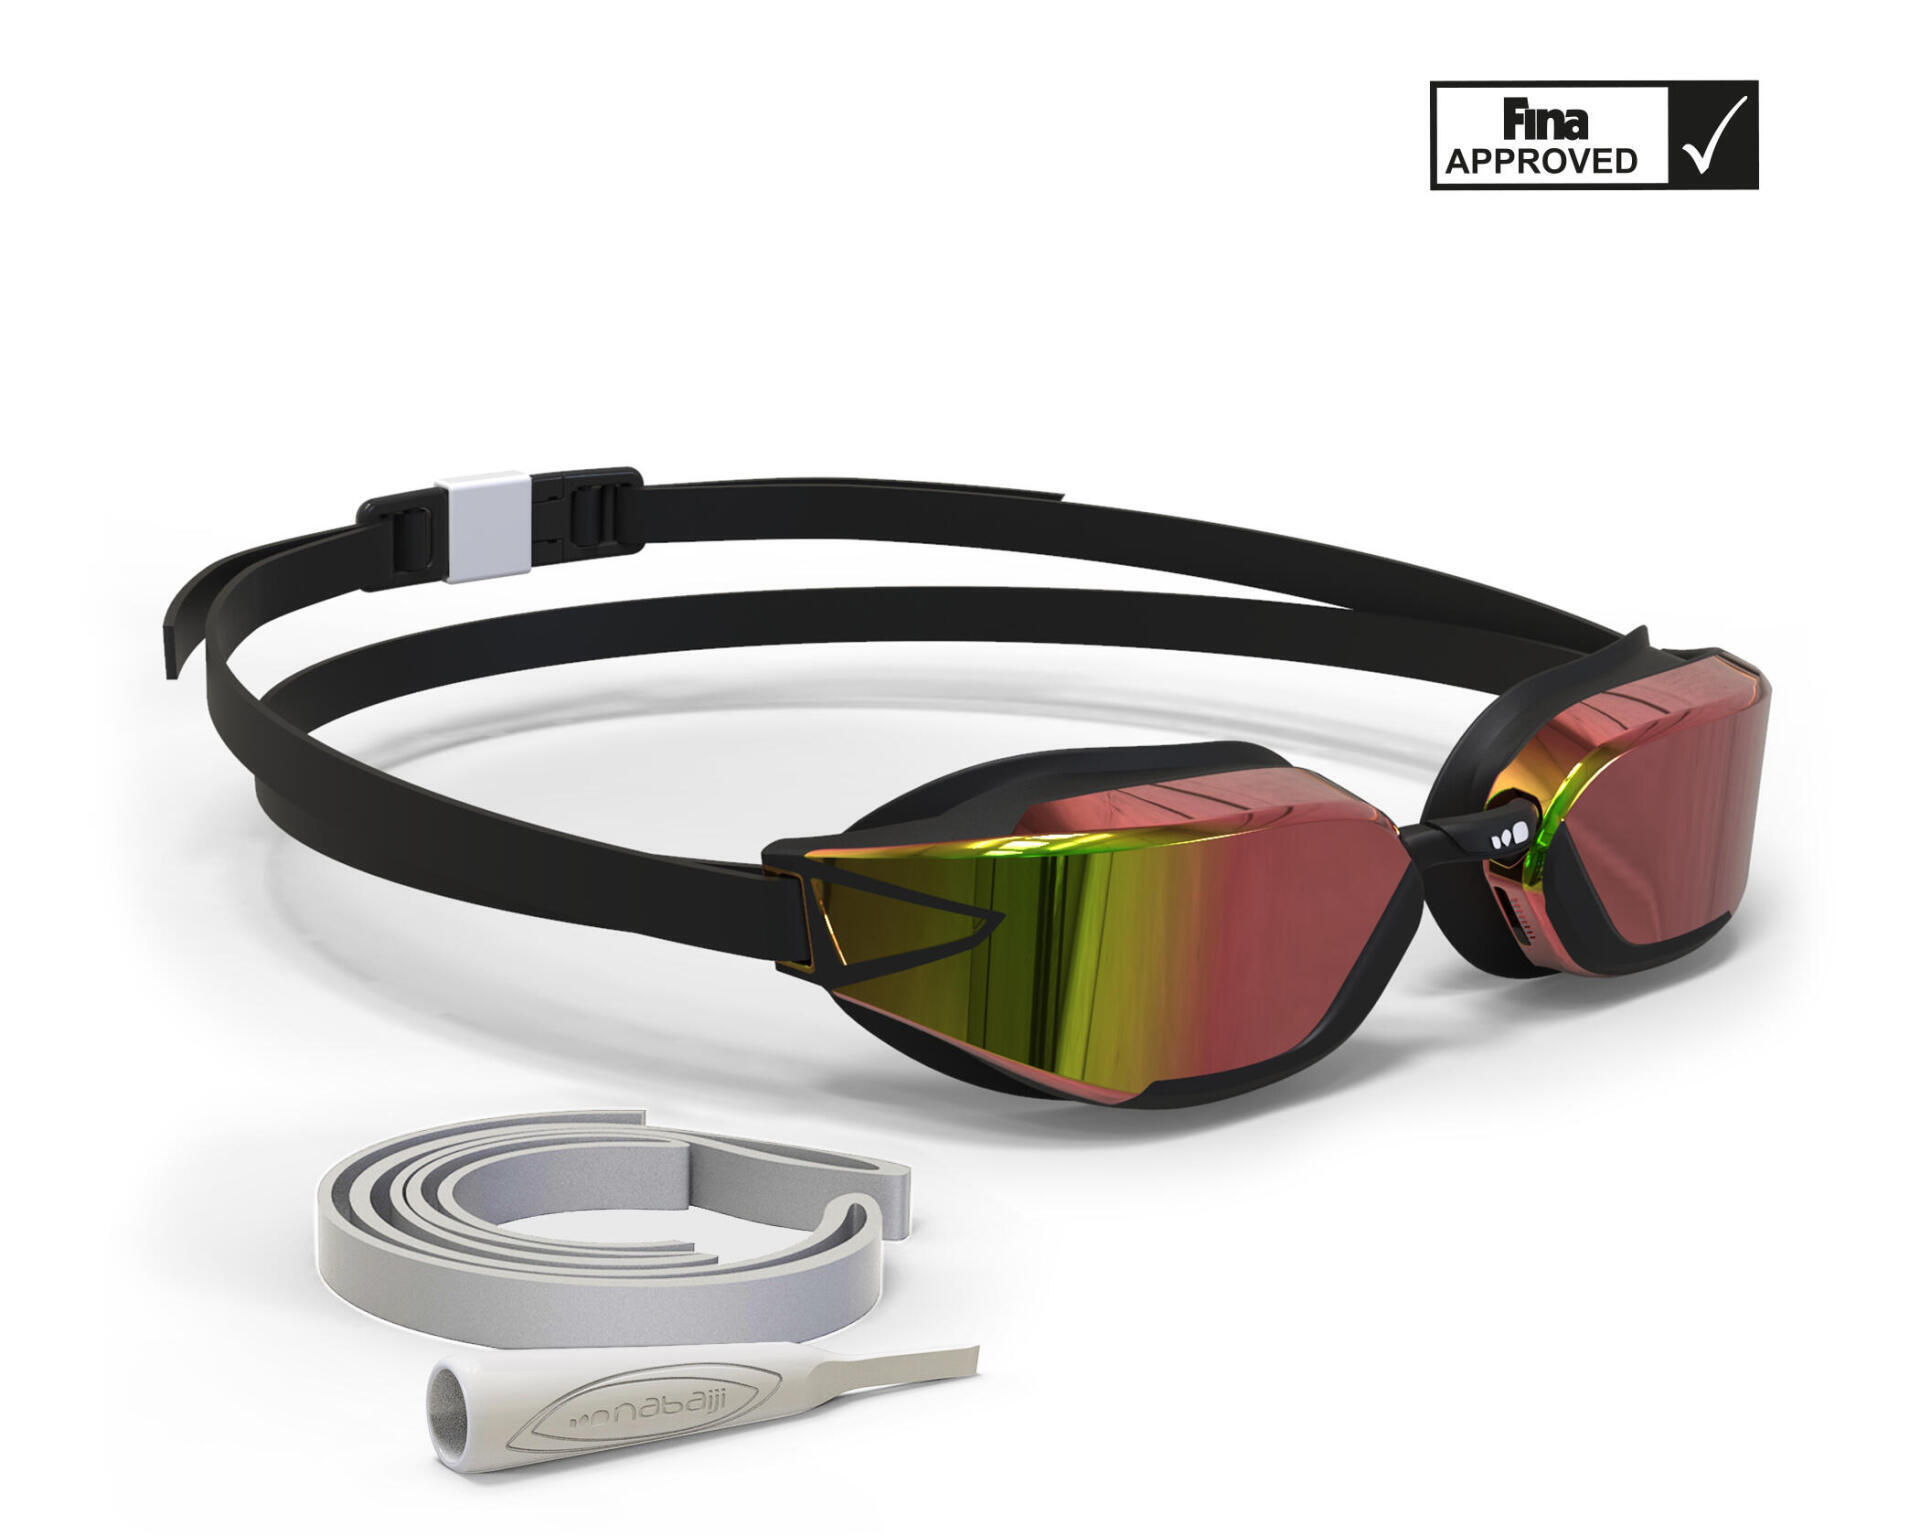 B-FAST SWIMMING GOGGLES 900- FINA APPROVED